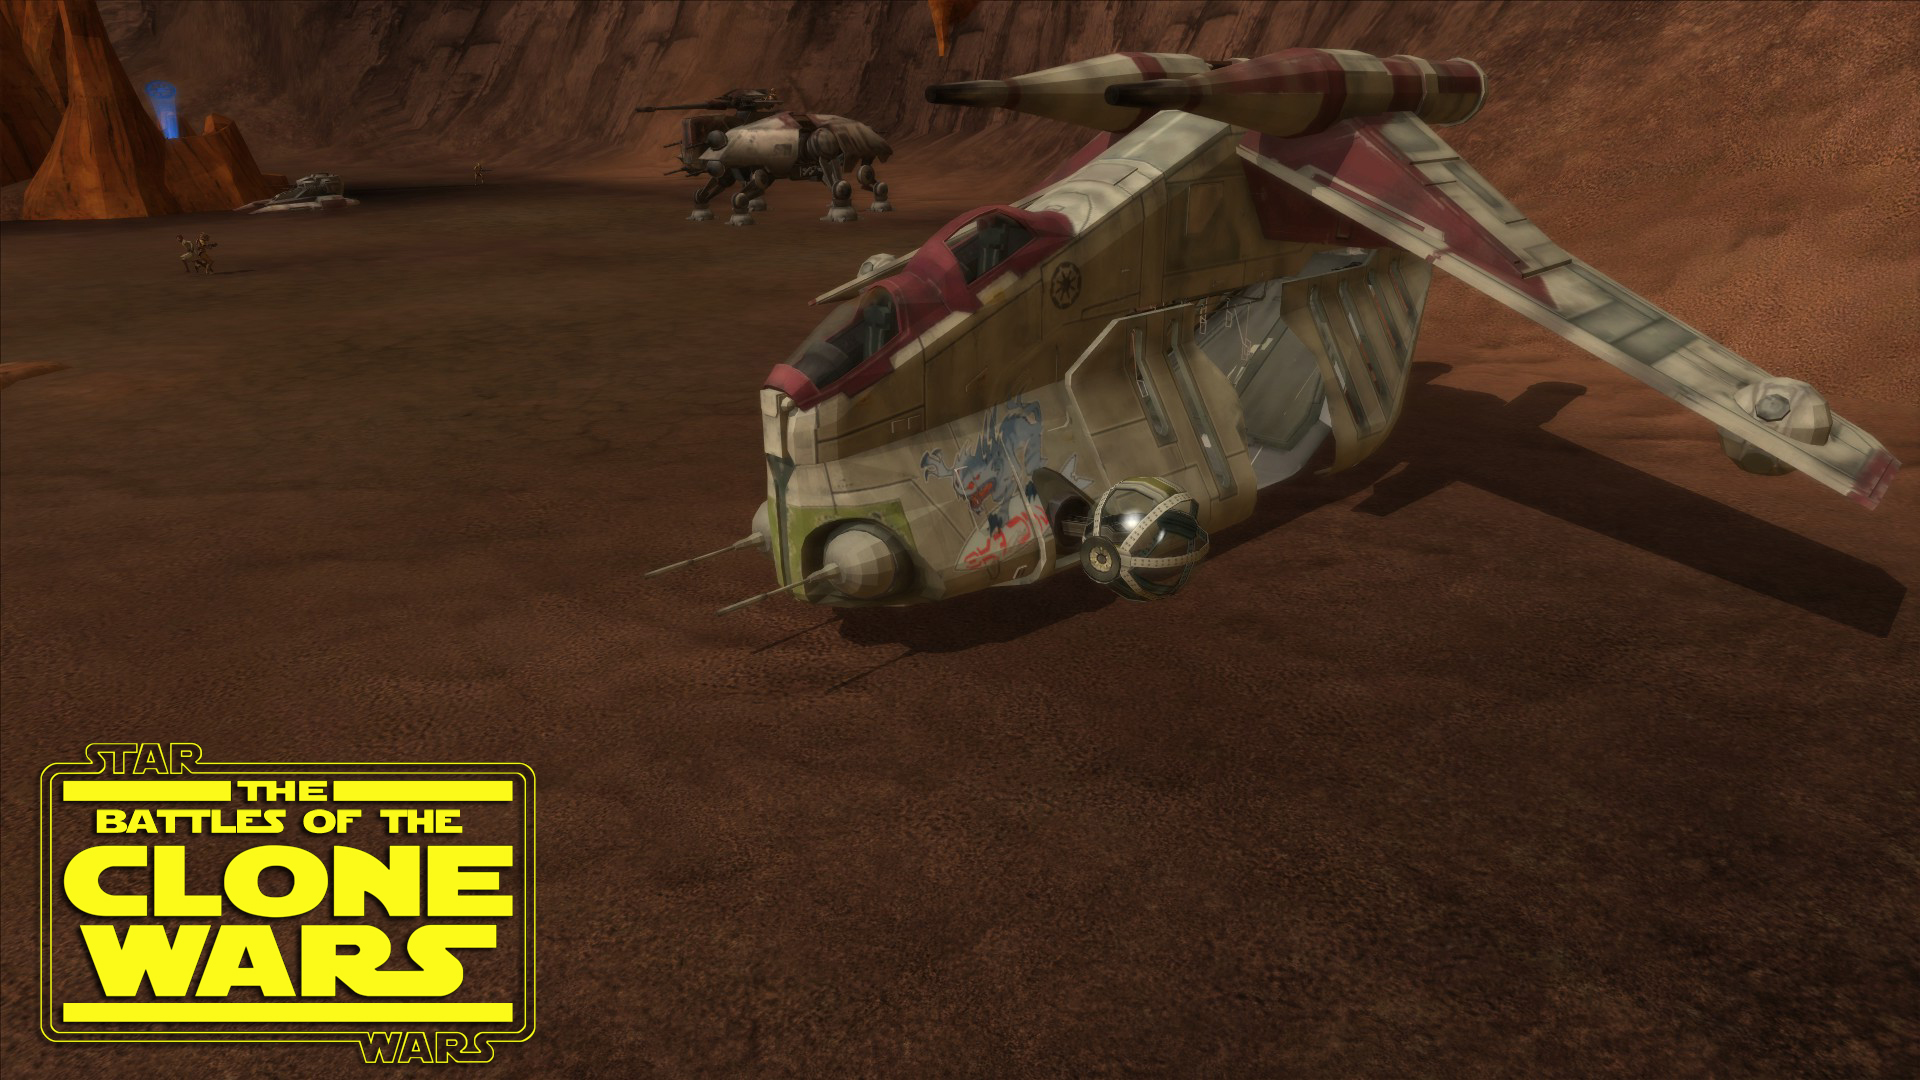 All The Vehicles Added To The Mod So Far Feature The Battles Of The Clone Wars Mod For Star Wars Battlefront Ii Mod Db